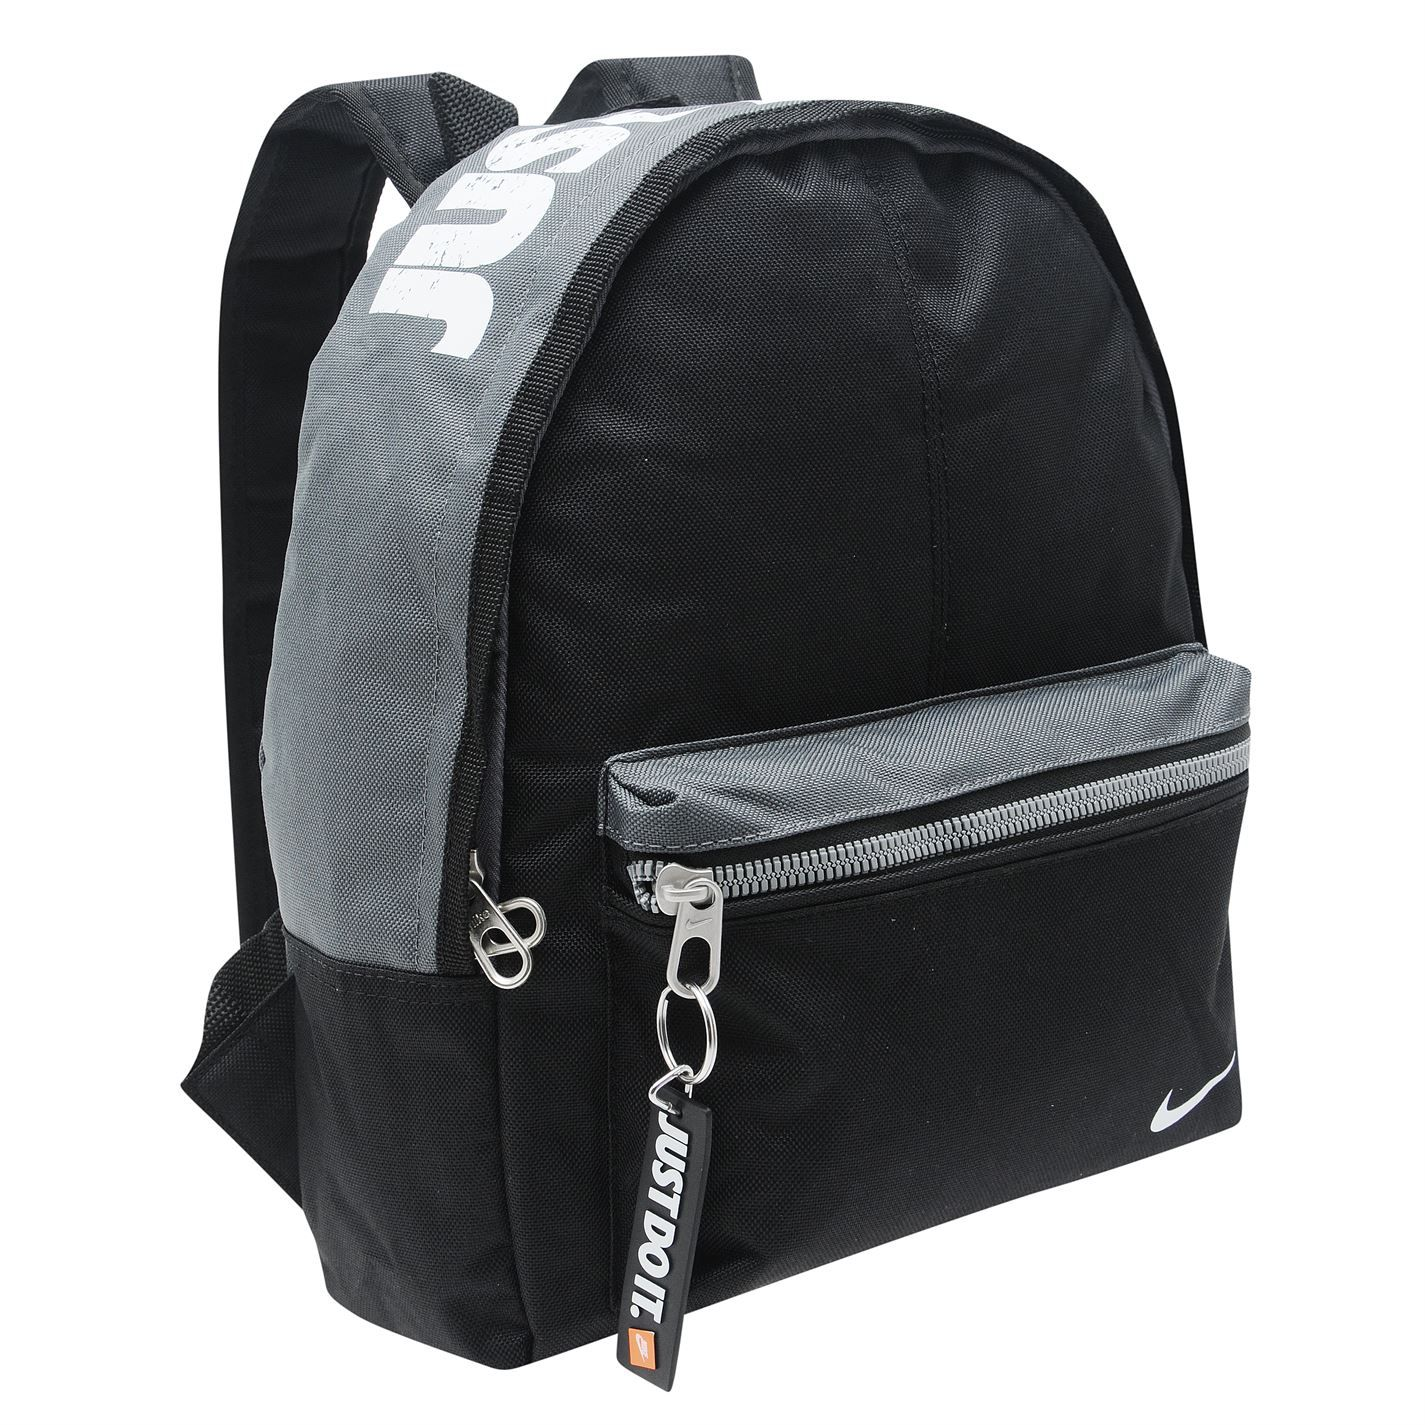 e9d73cc5b7 Nike Mini Base Backpack in 2019